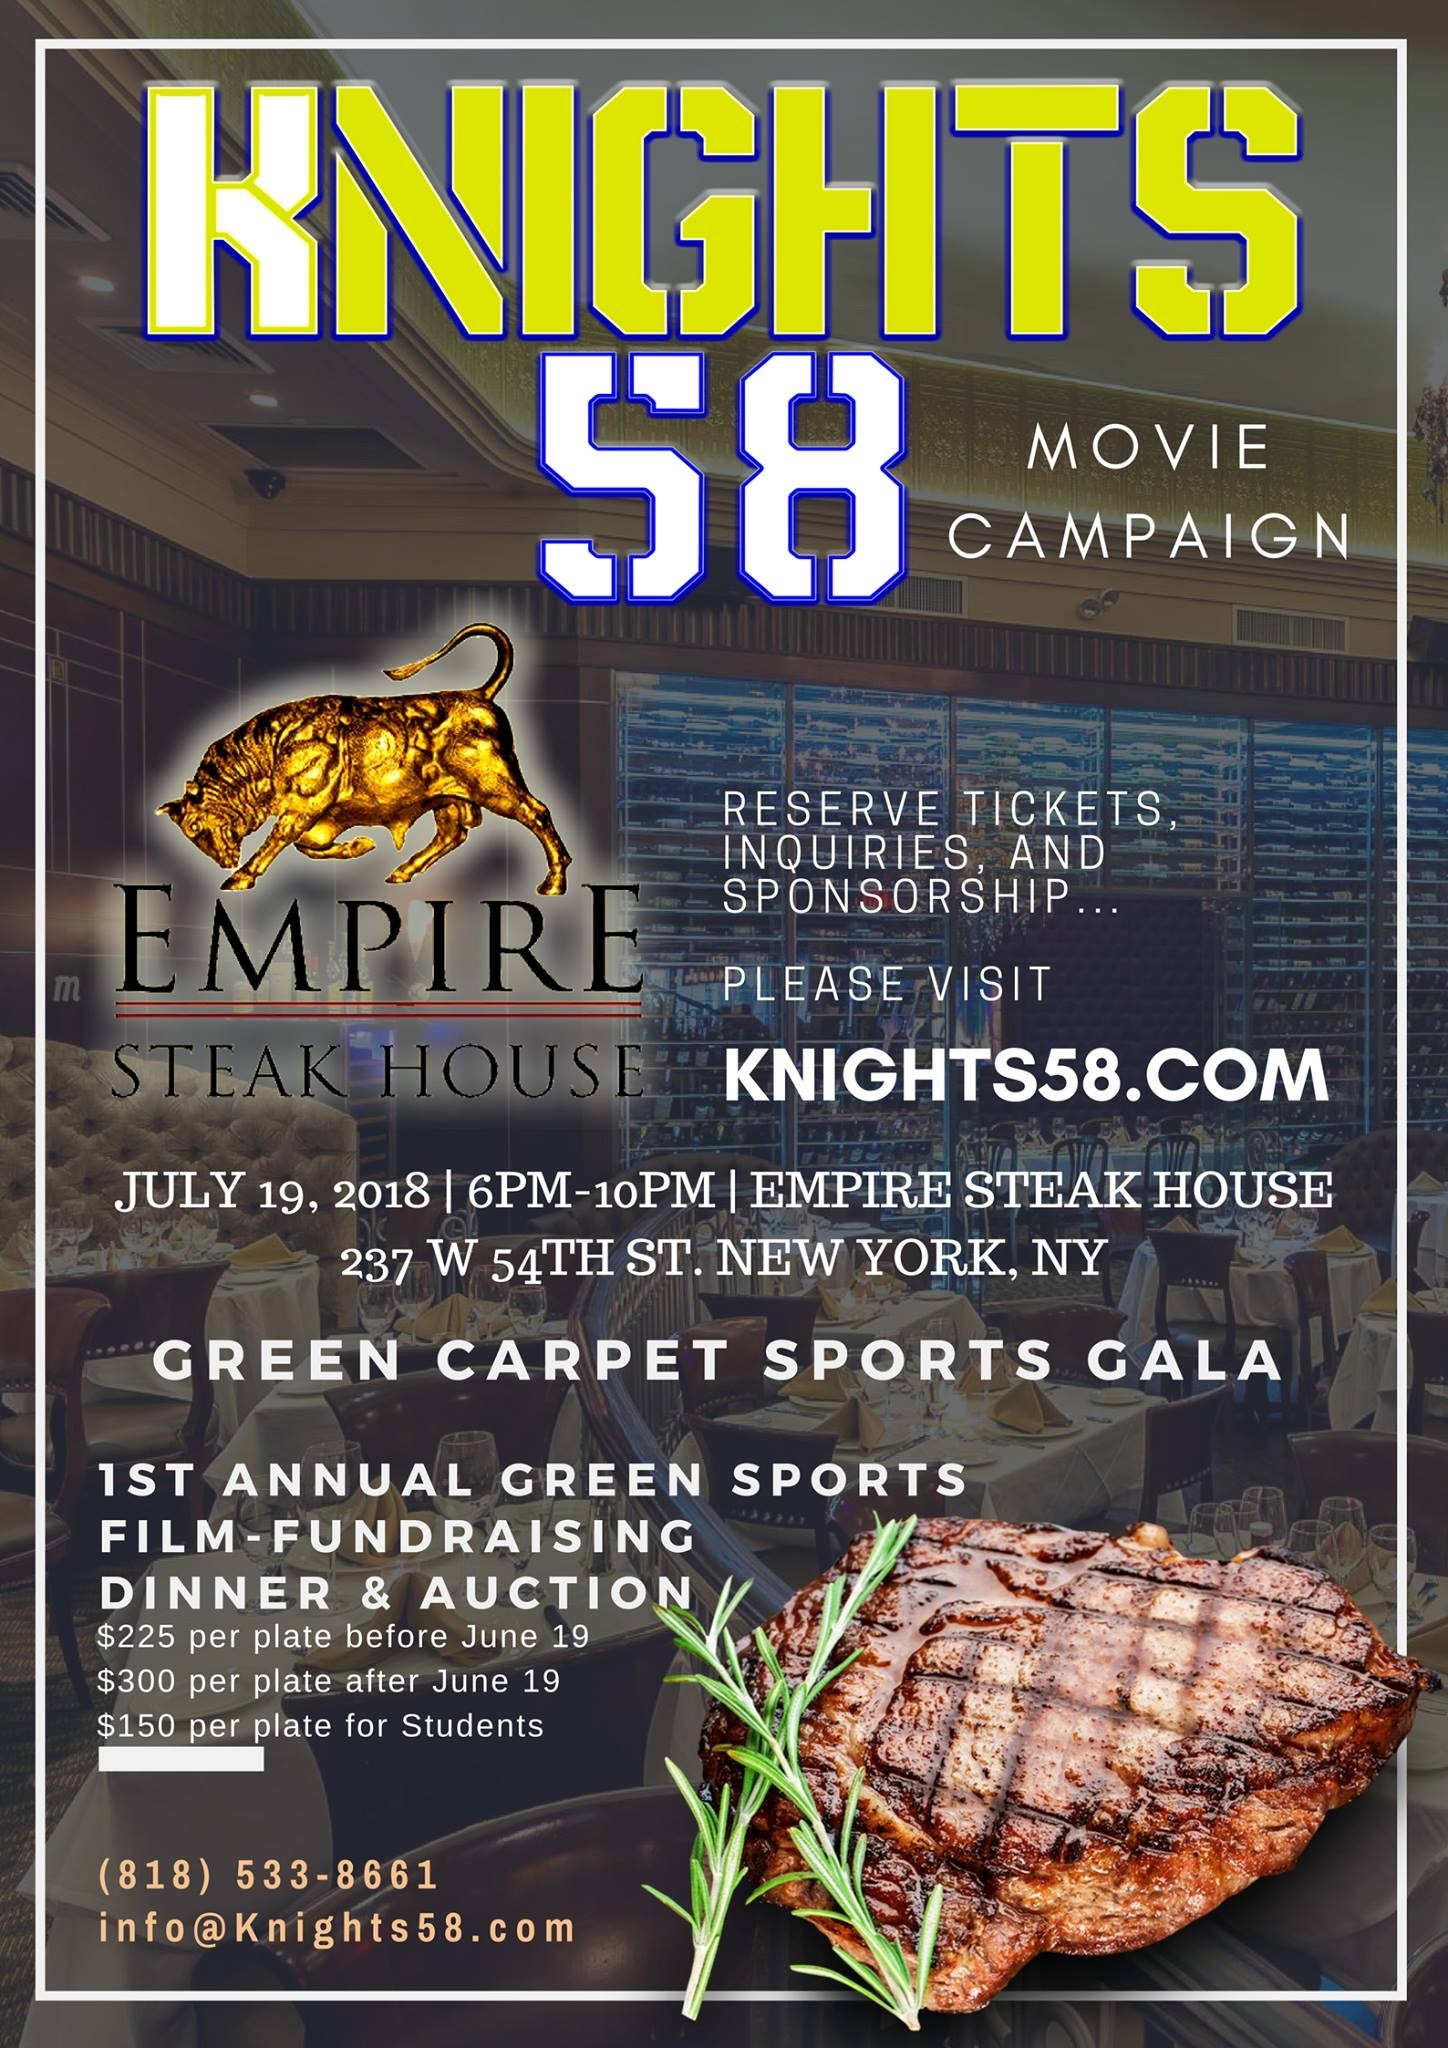 Empire Steak House NY Hosts The 1st Annual 'Green Sports' Film-Fundraiser Dinner and Sports Auction 7/19